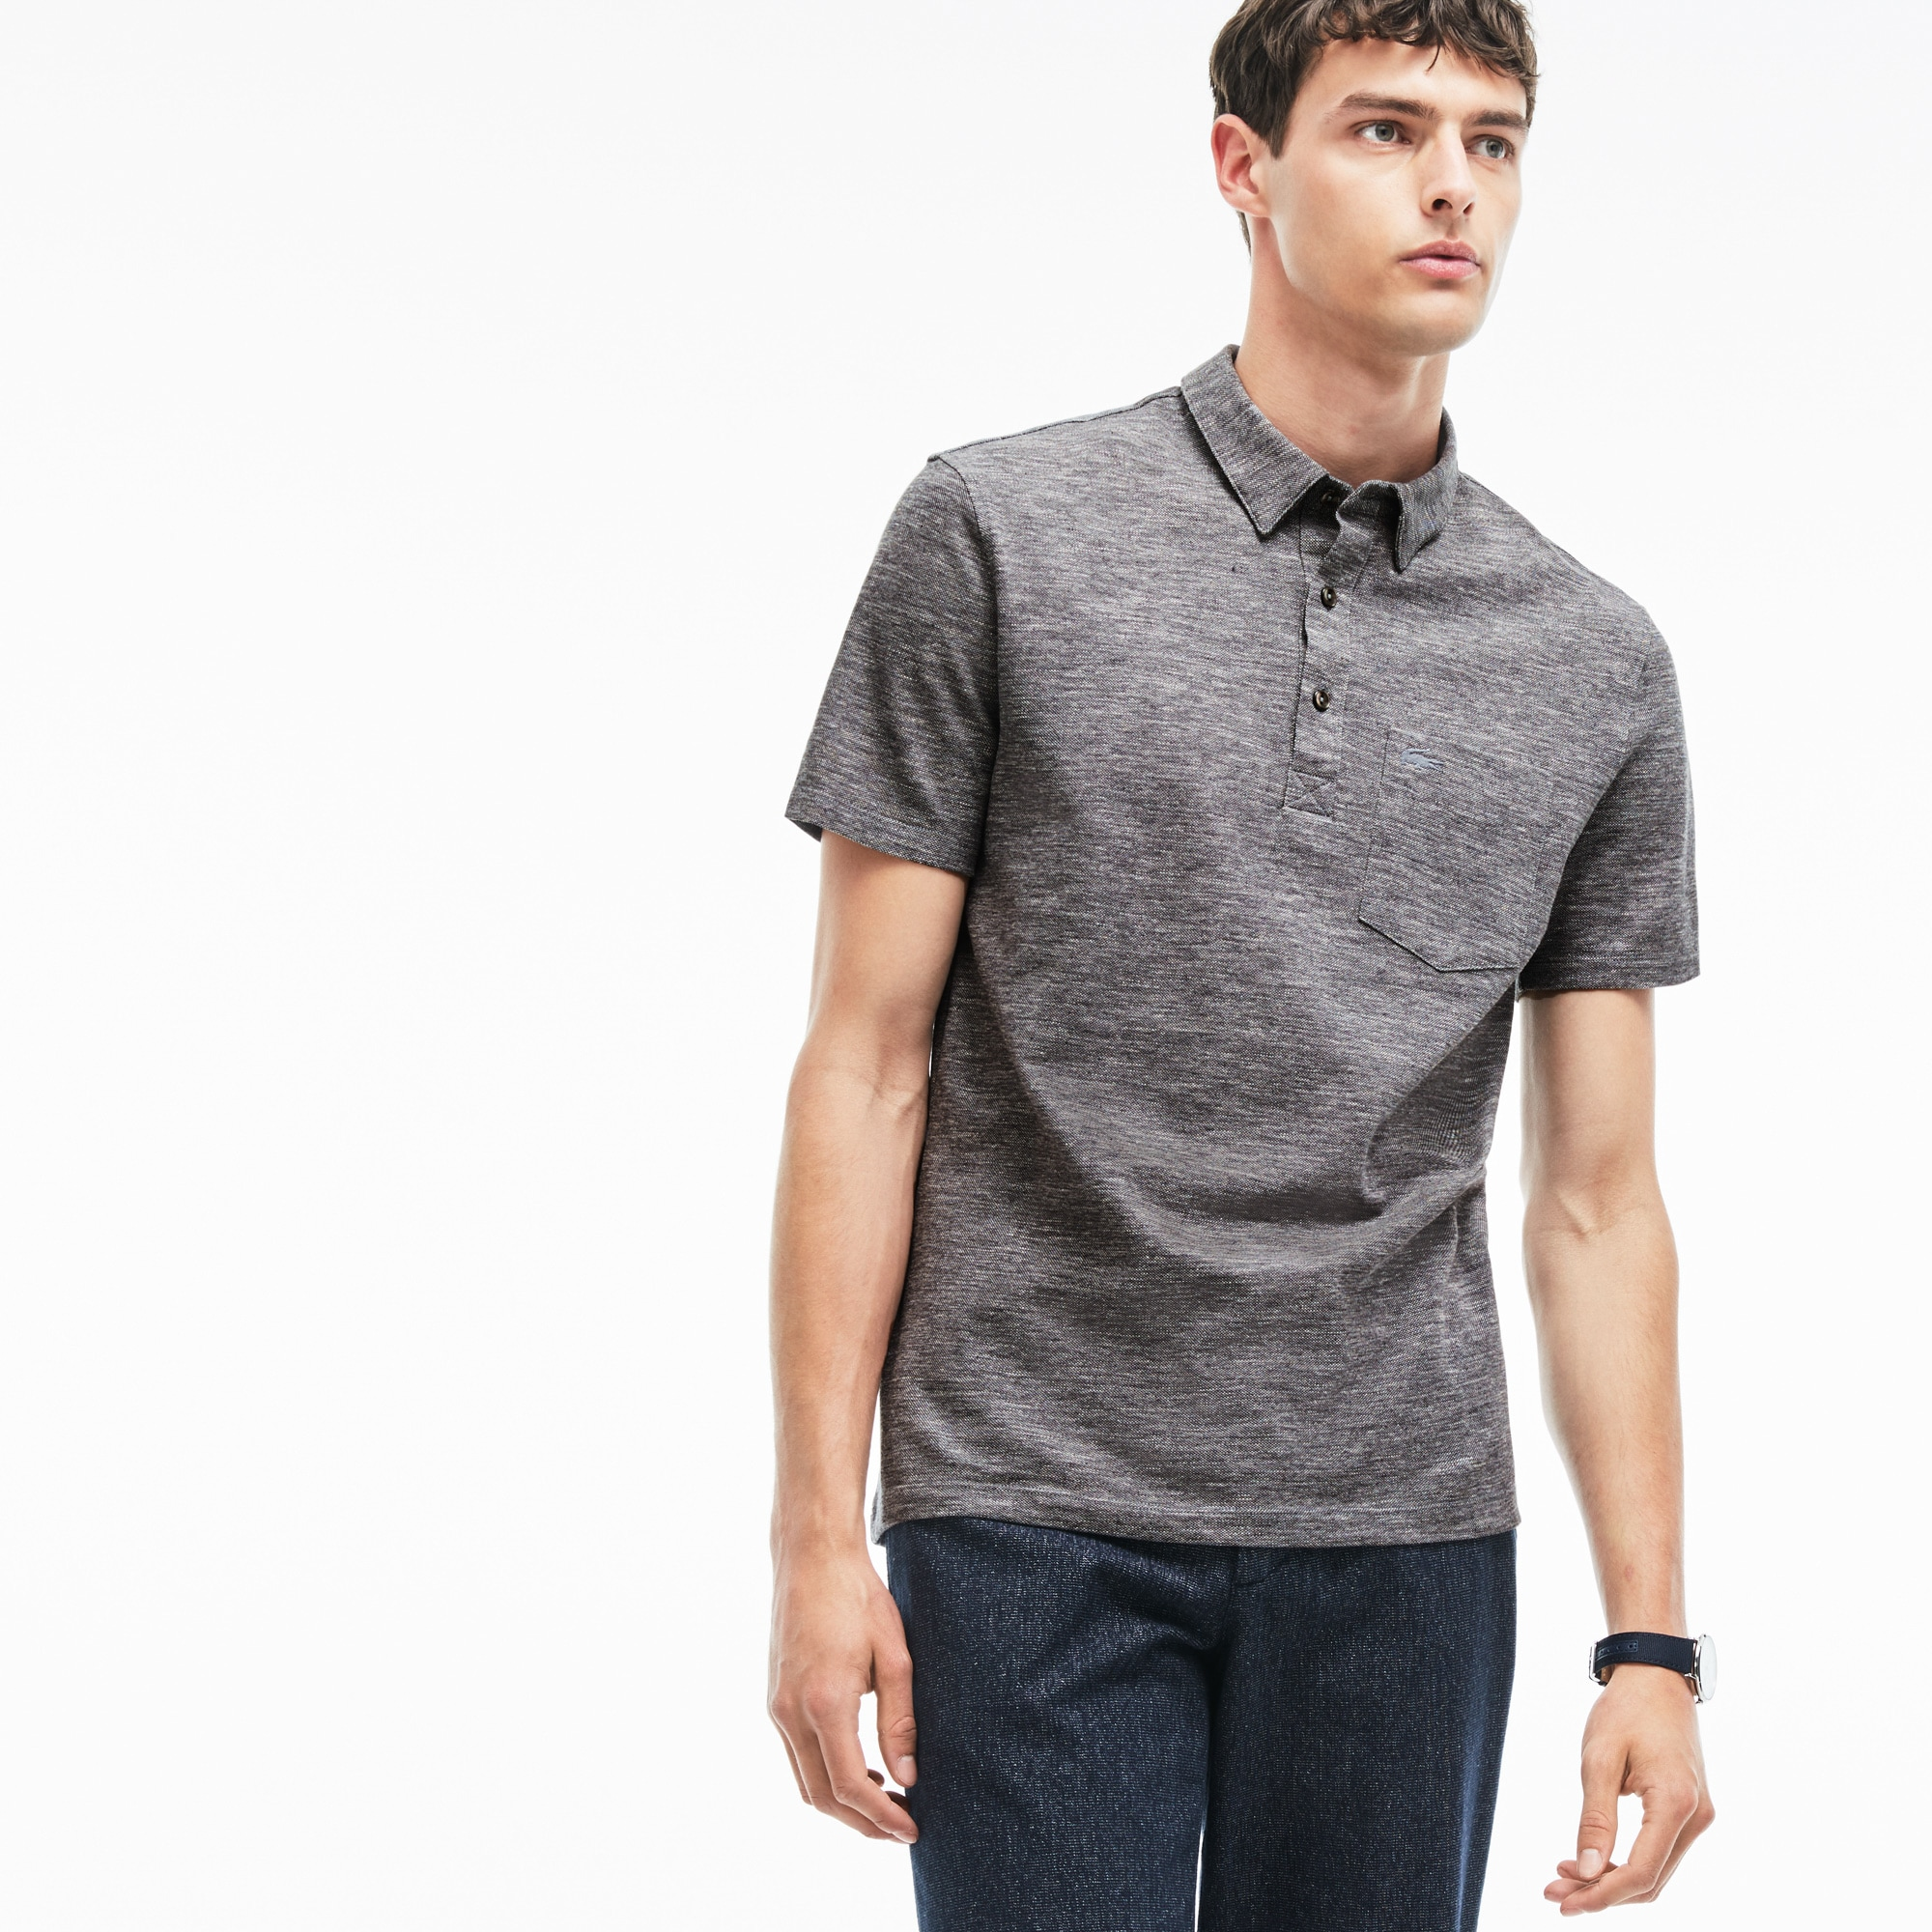 Men's Slim Fit Heather Cotton Piqué Polo